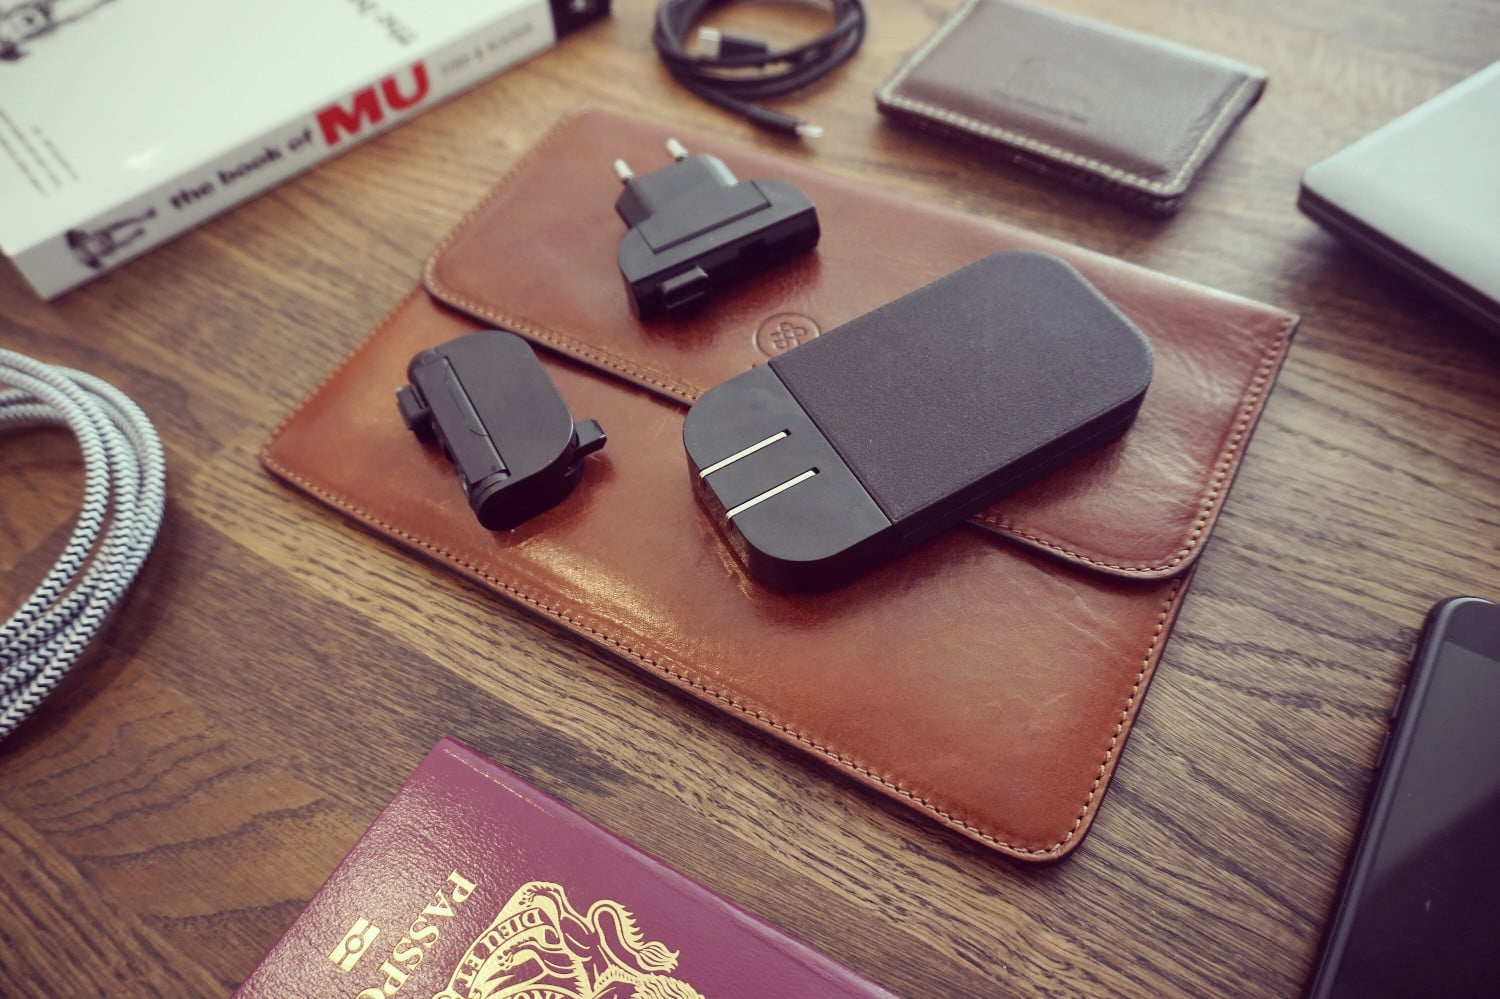 The svelte Mu Two international travel charger can power your laptop and phone